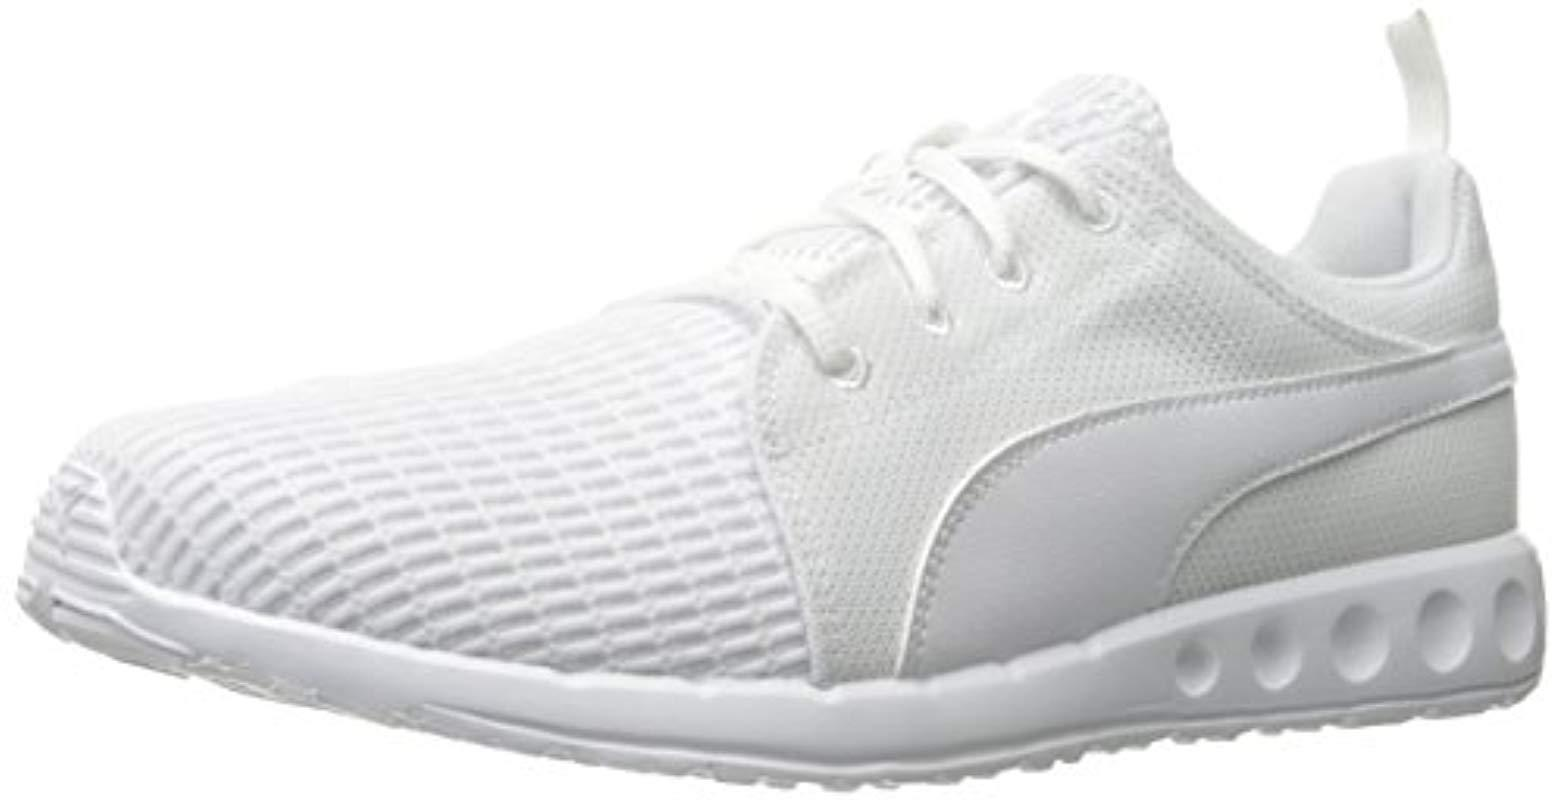 Lyst - PUMA Carson Dash Cross-trainer Shoe in White for Men 7e36e18de